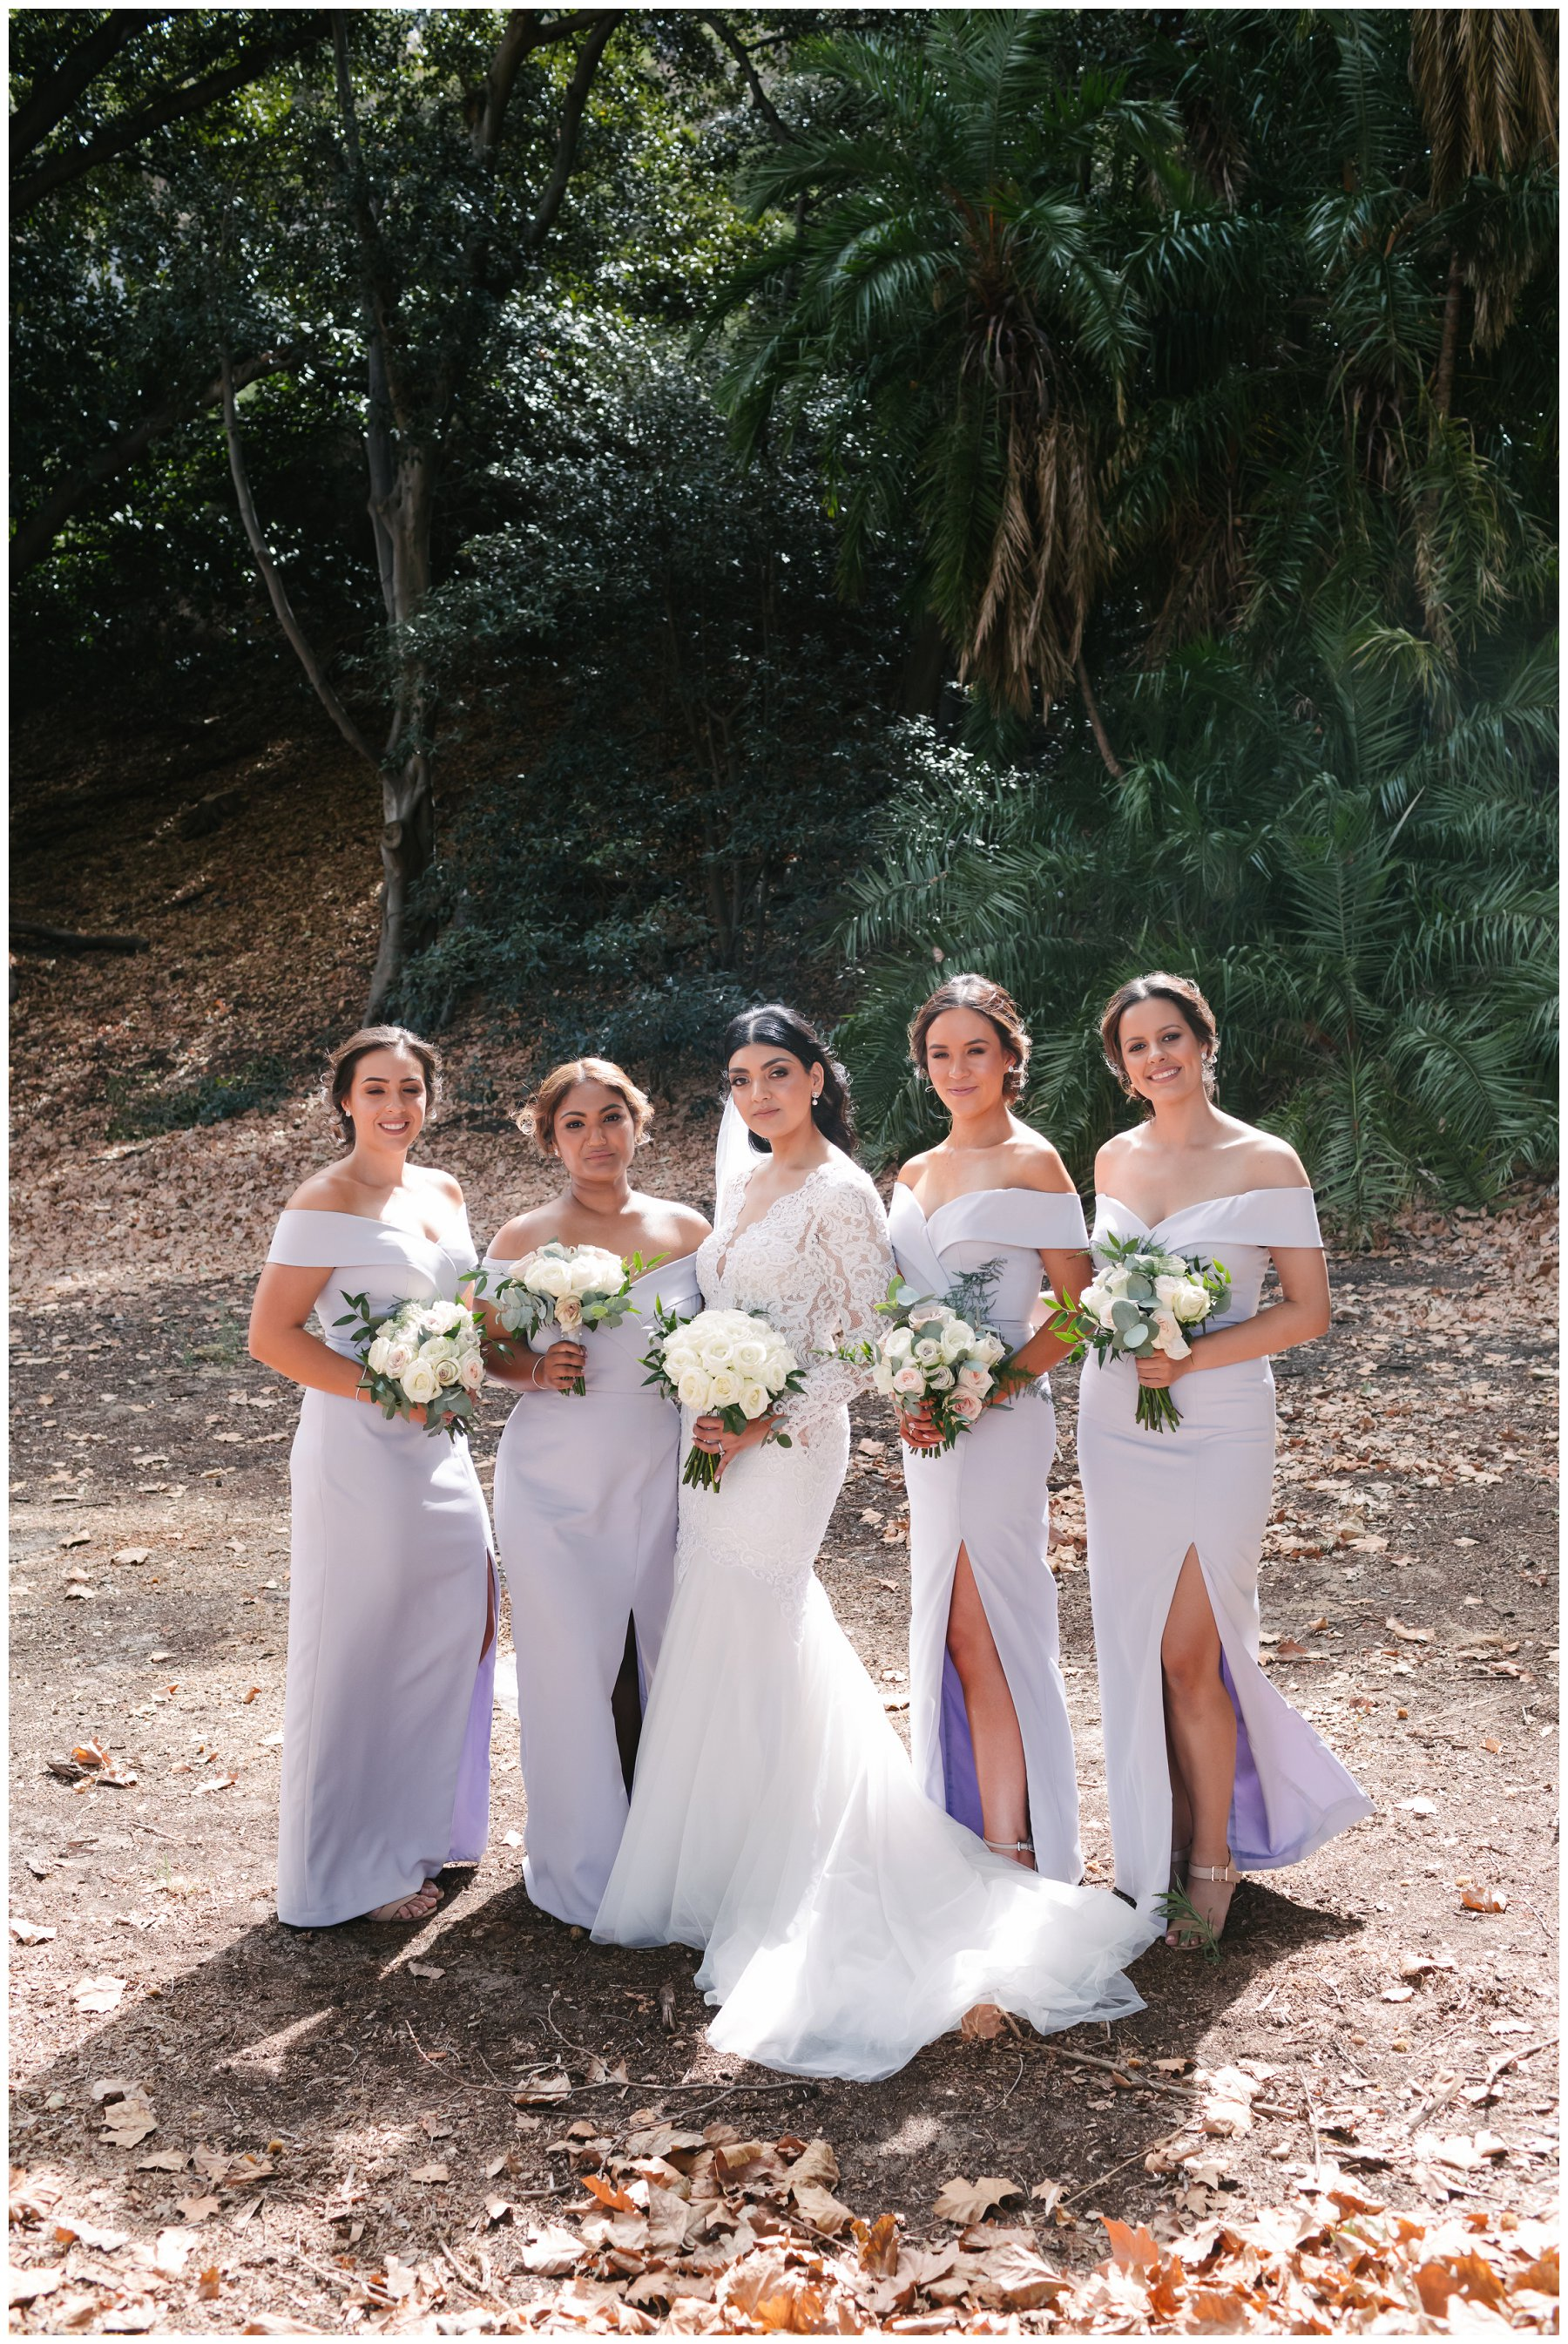 bridesmaids in lilac dresses with white roses